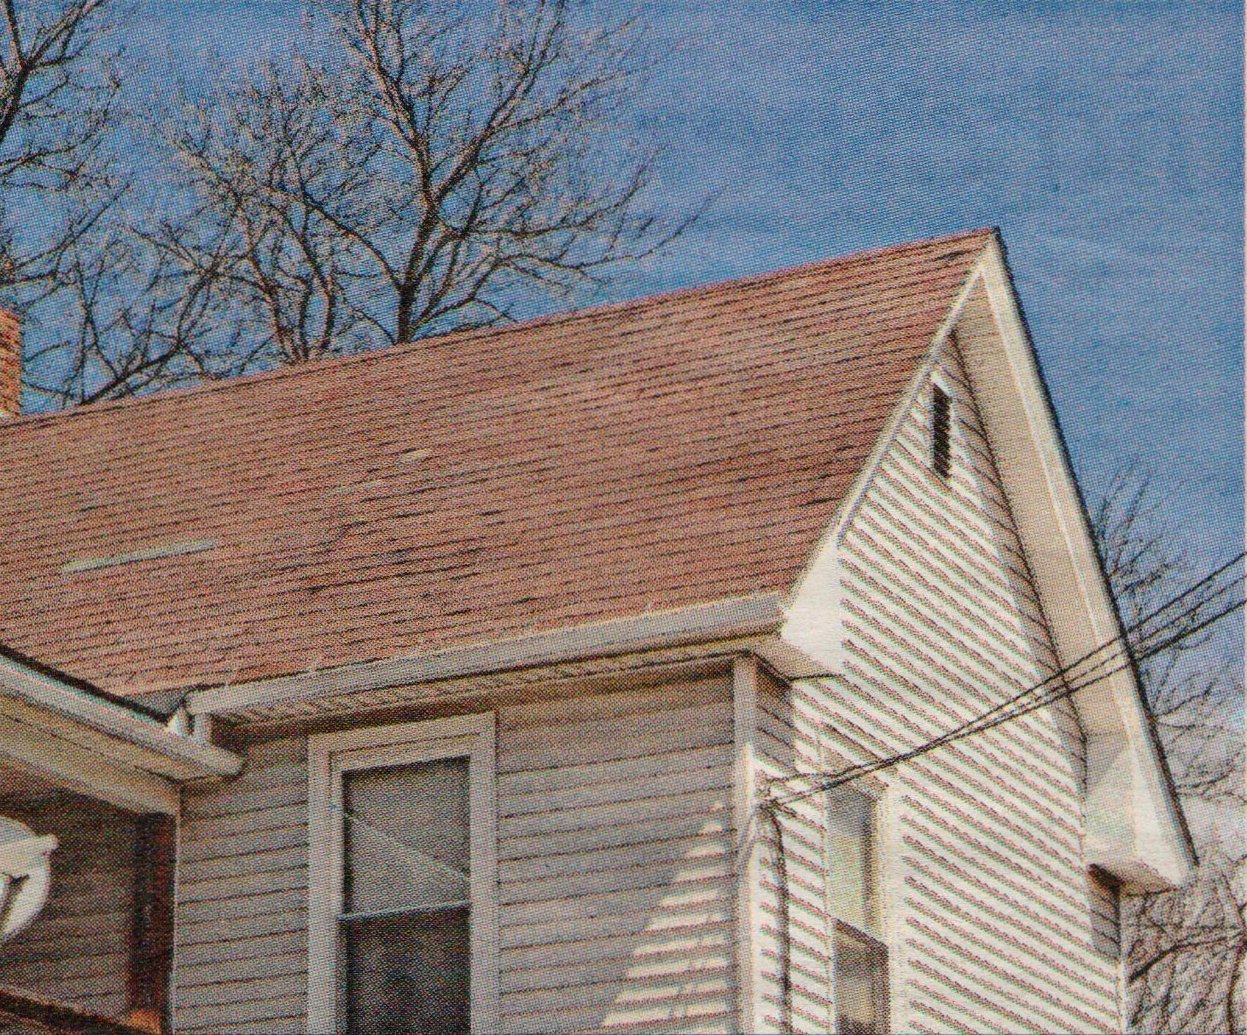 An older roof showing signs of age